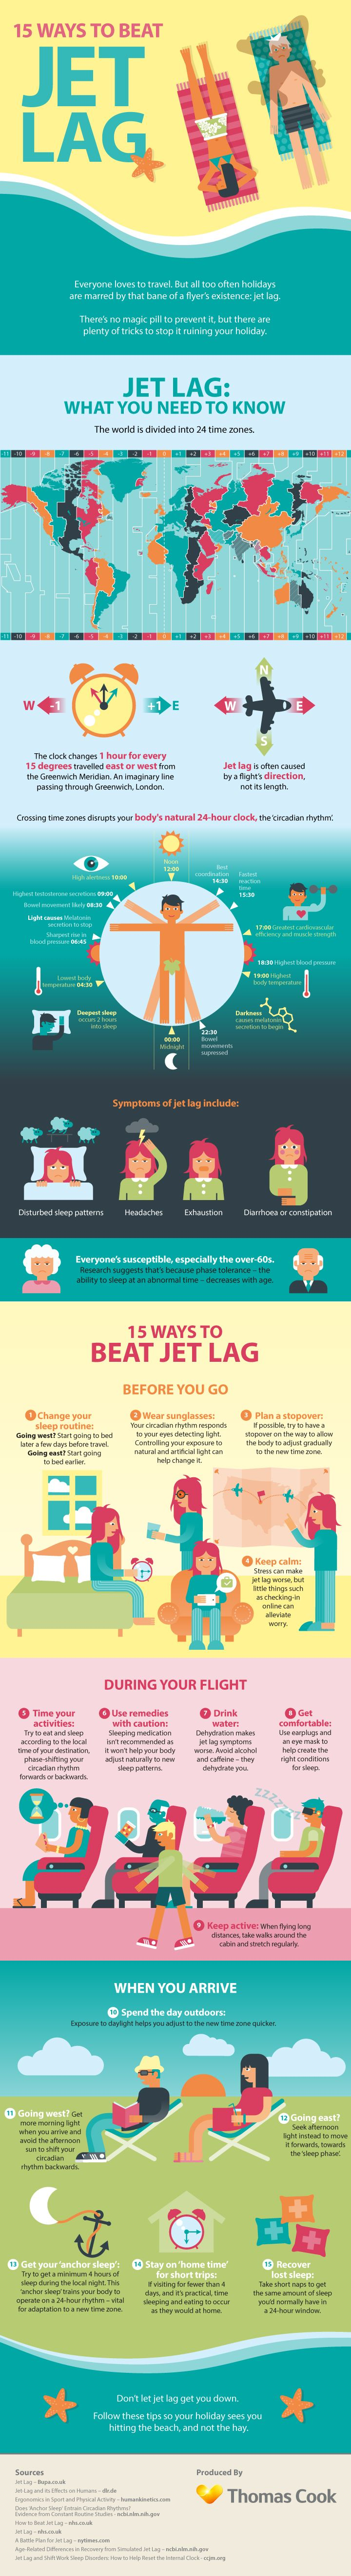 Beat jet-lag tips